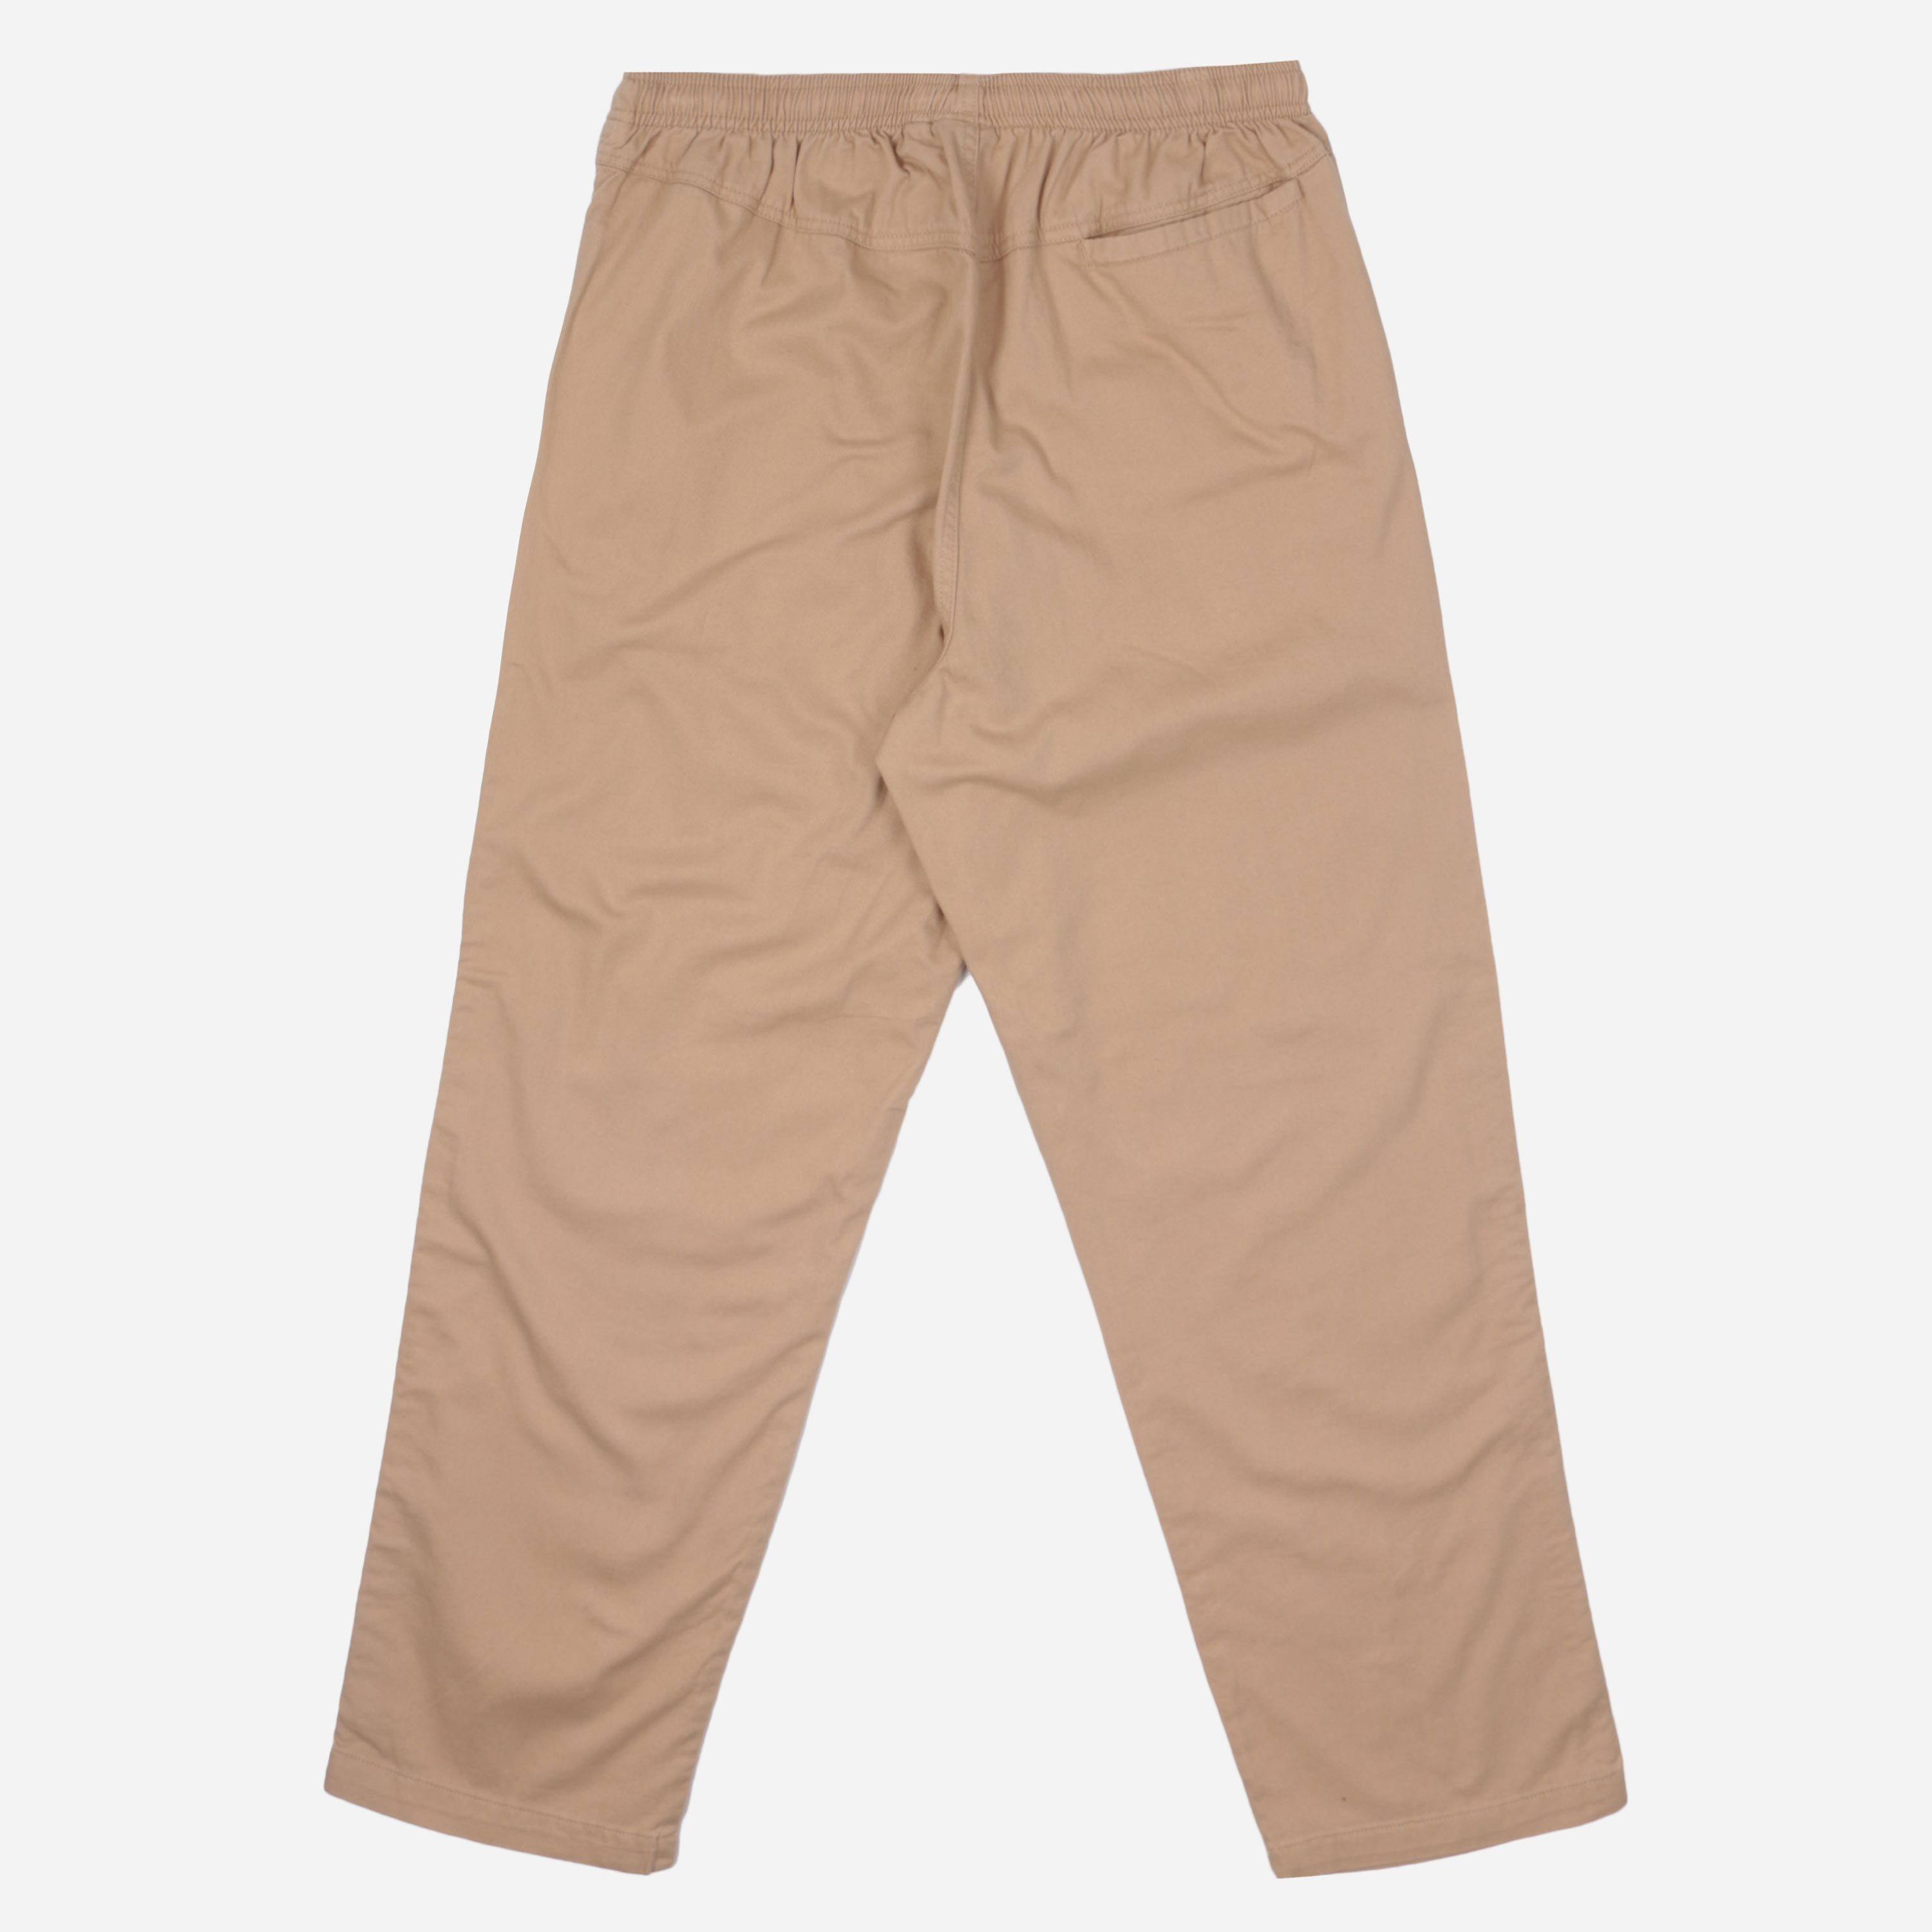 fce6be18686382 Lyst - Stussy Brushed Beach Pants in Natural for Men